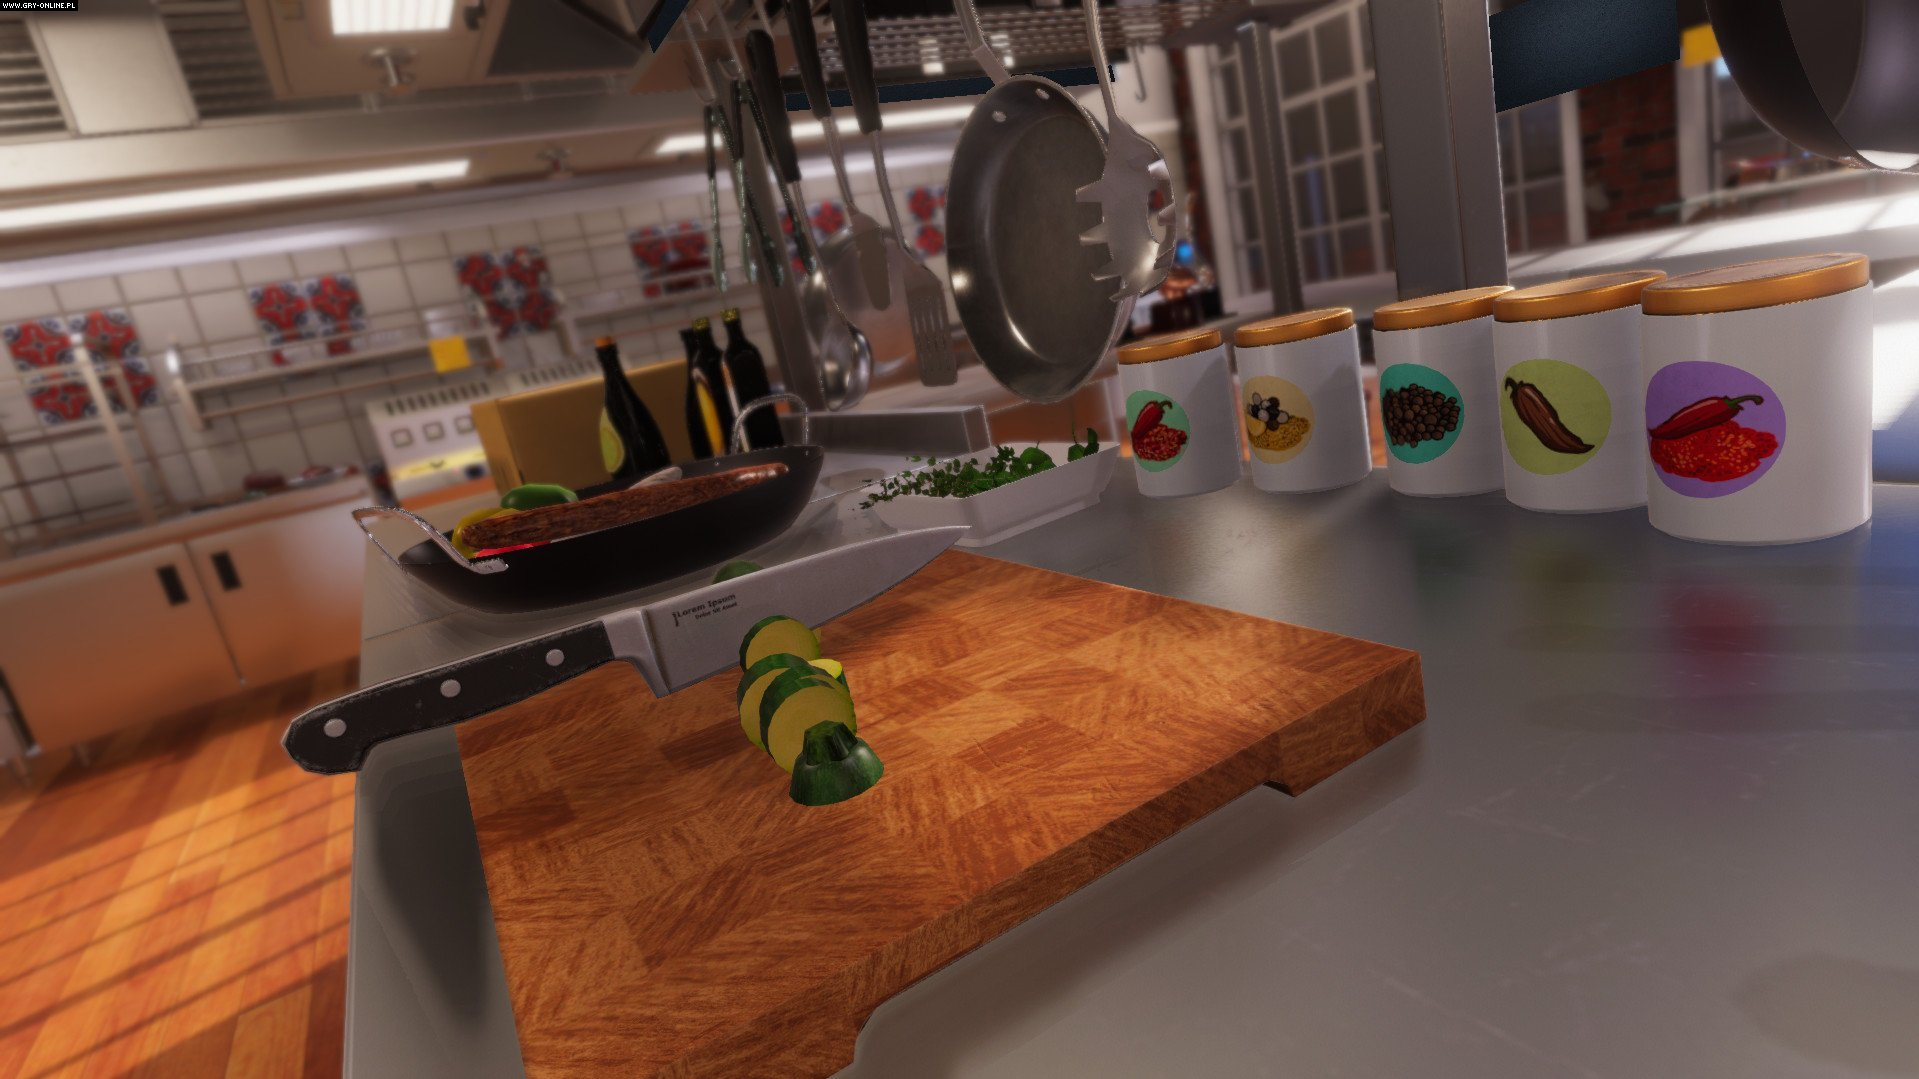 Cooking Simulator PC Games Image 8/34, Wastelands Interactive, PlayWay